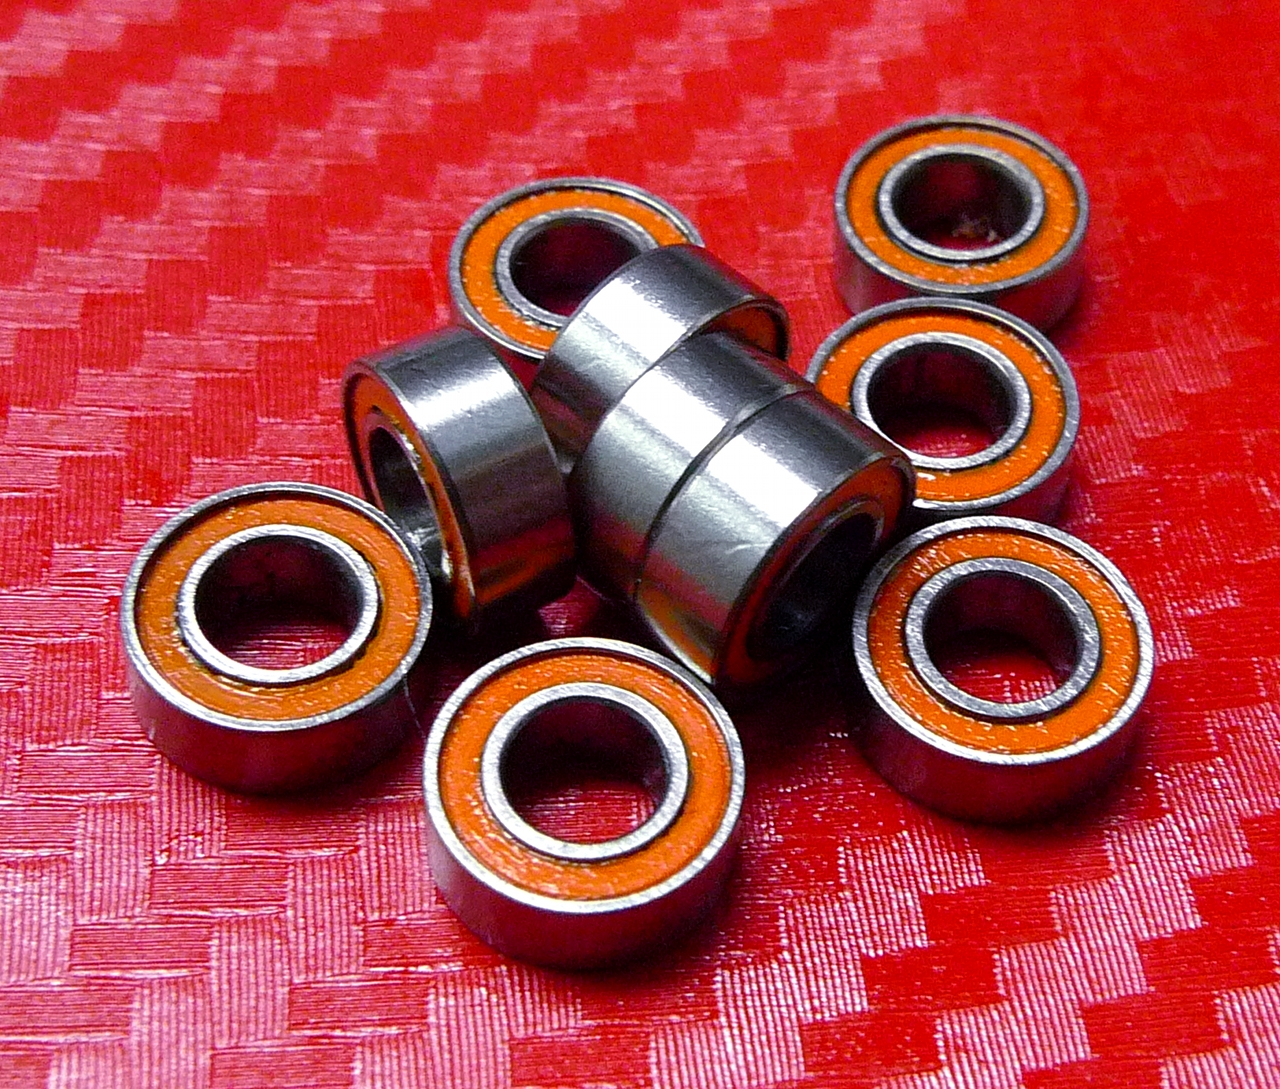 MR84-2RS ORANGE MR84RS 10 PCS Rubber Sealed Ball Bearing 4x8x3 mm